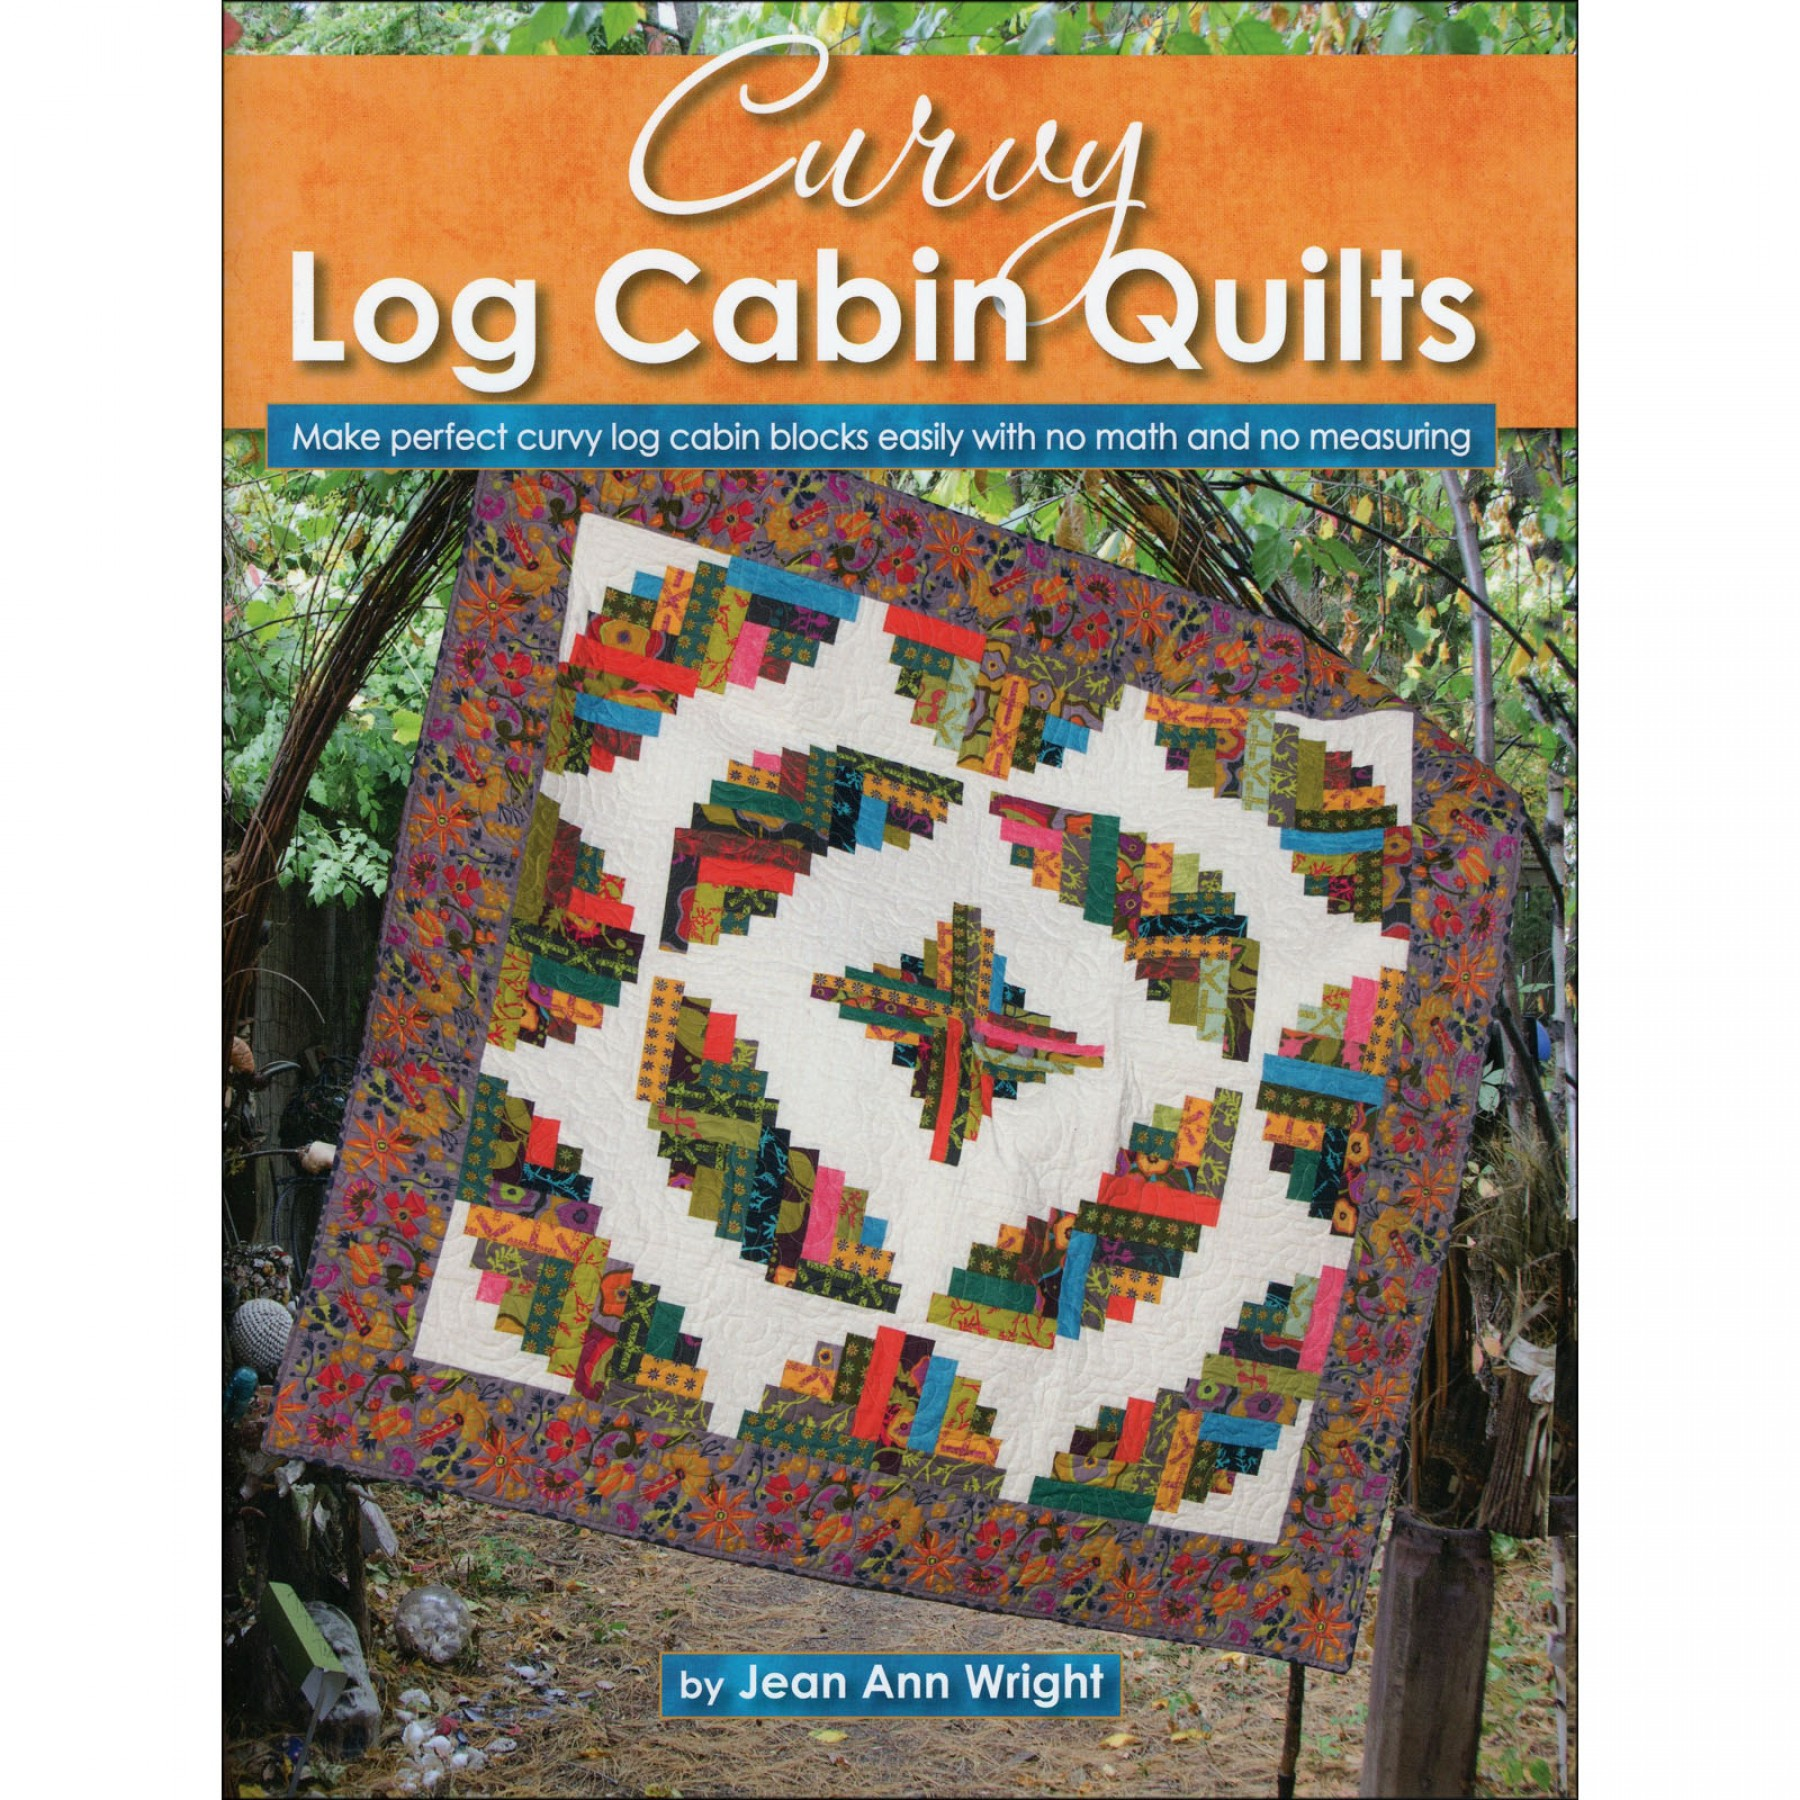 best pinterest book the mi judymartinquilt cabin images log on carrie up close i love casa s quilt quilts from cabins nelson